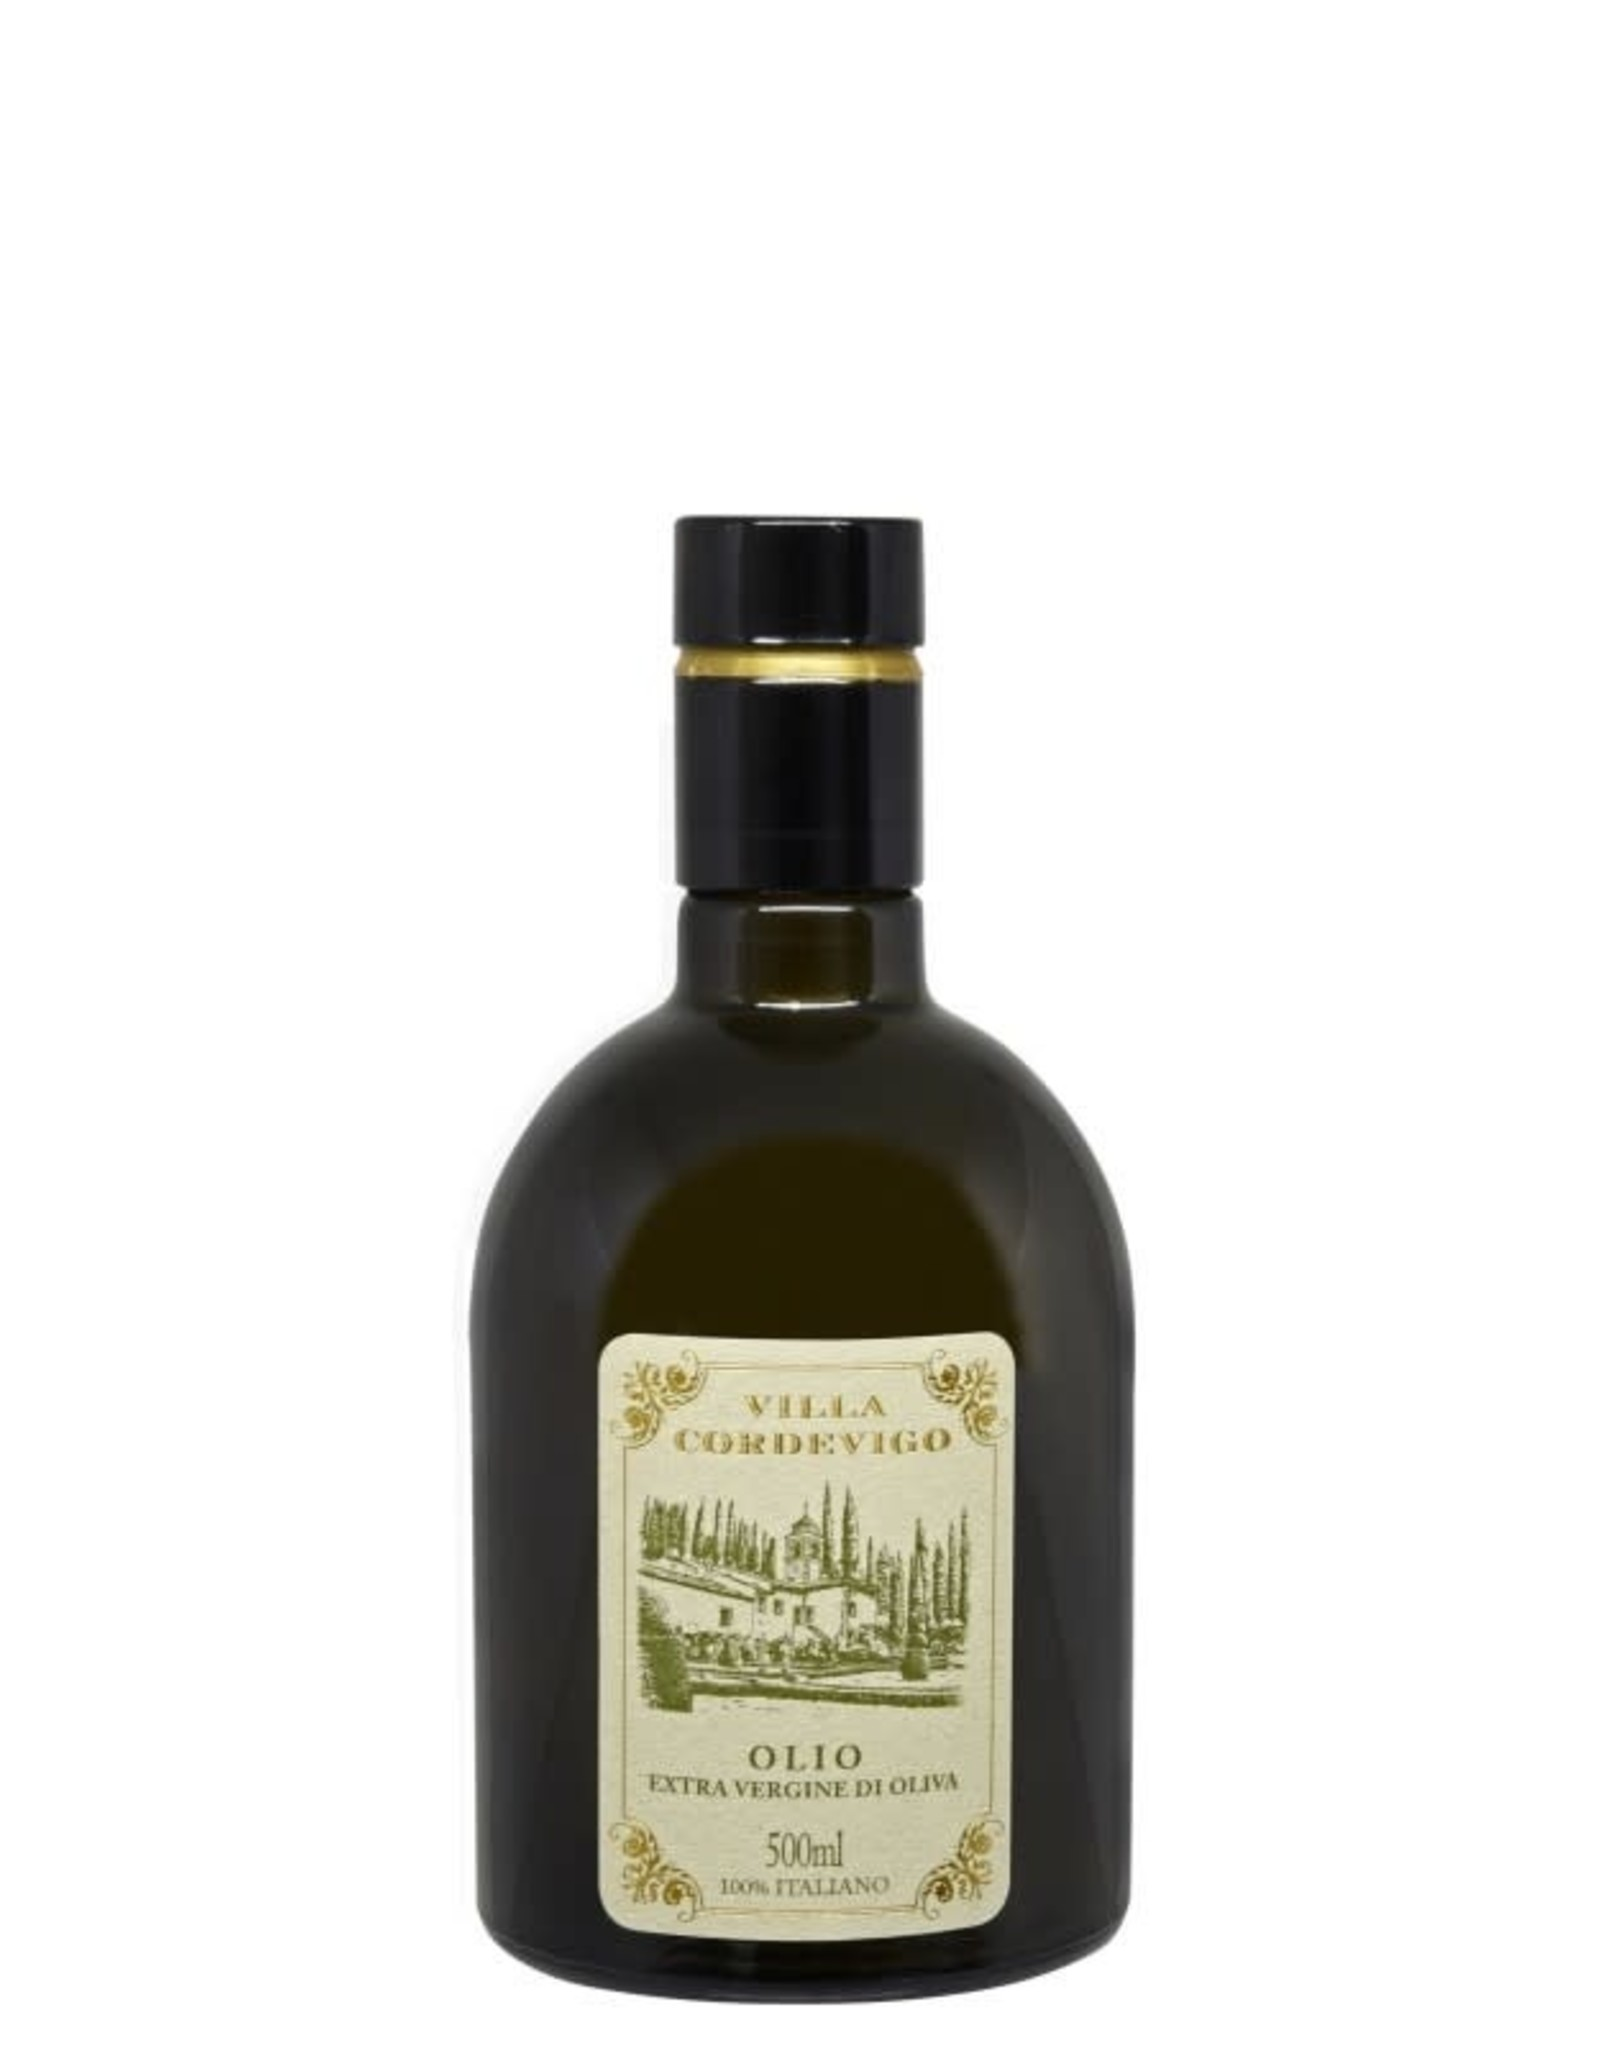 Villabella Olive Oil